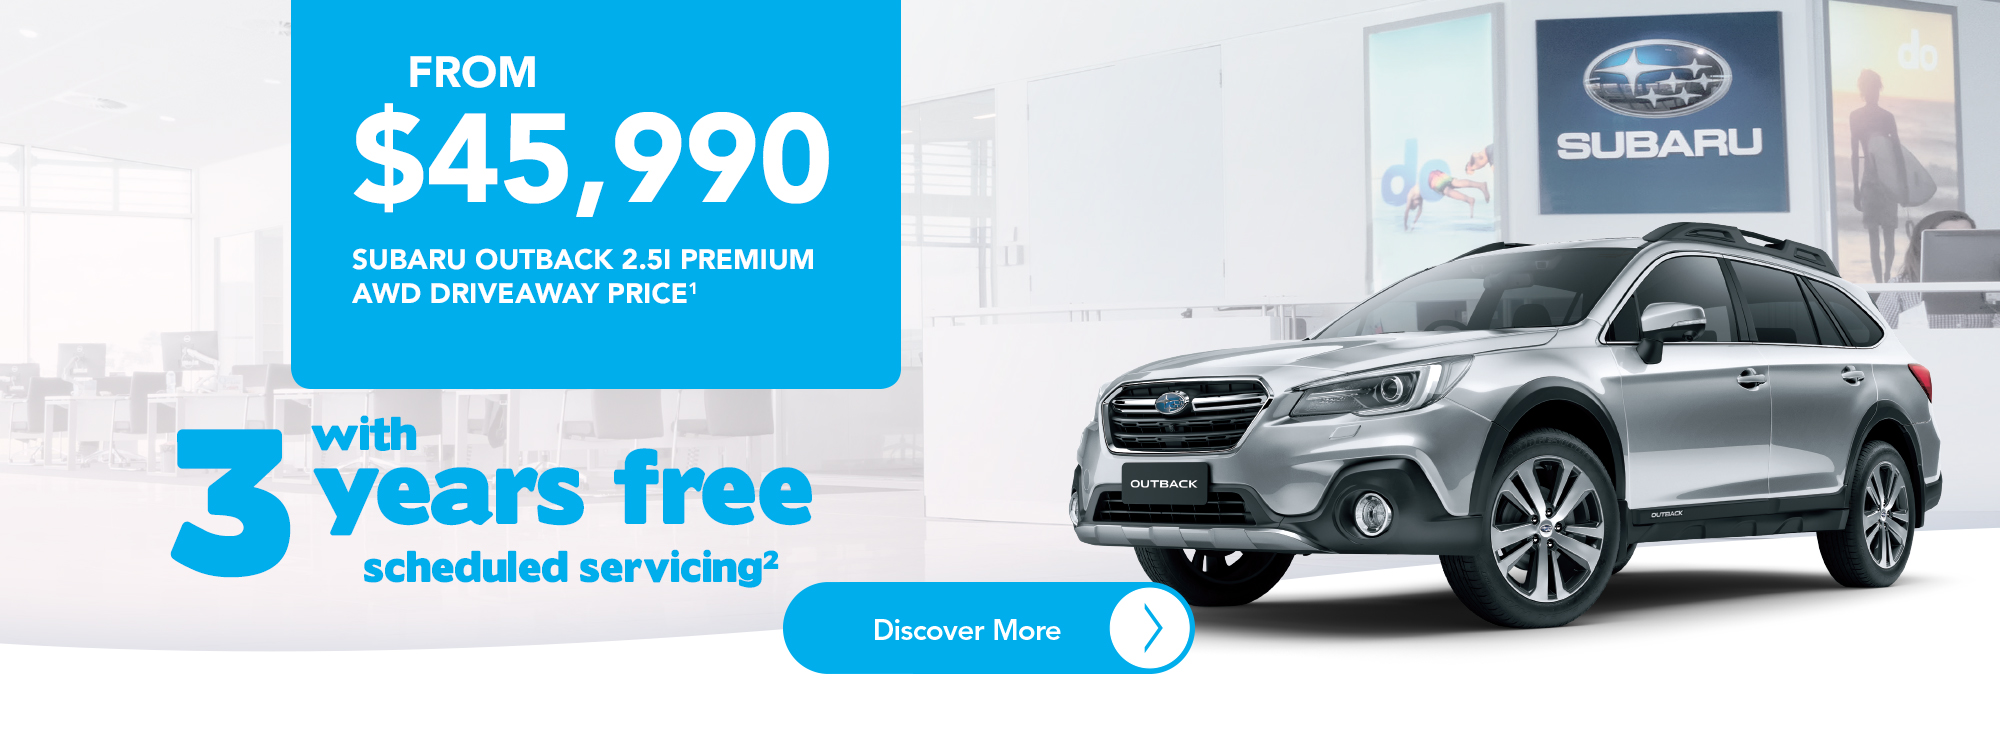 WEBSITE_BANNER_OUTBACK_OFFER_SUBARU_MAY_2019